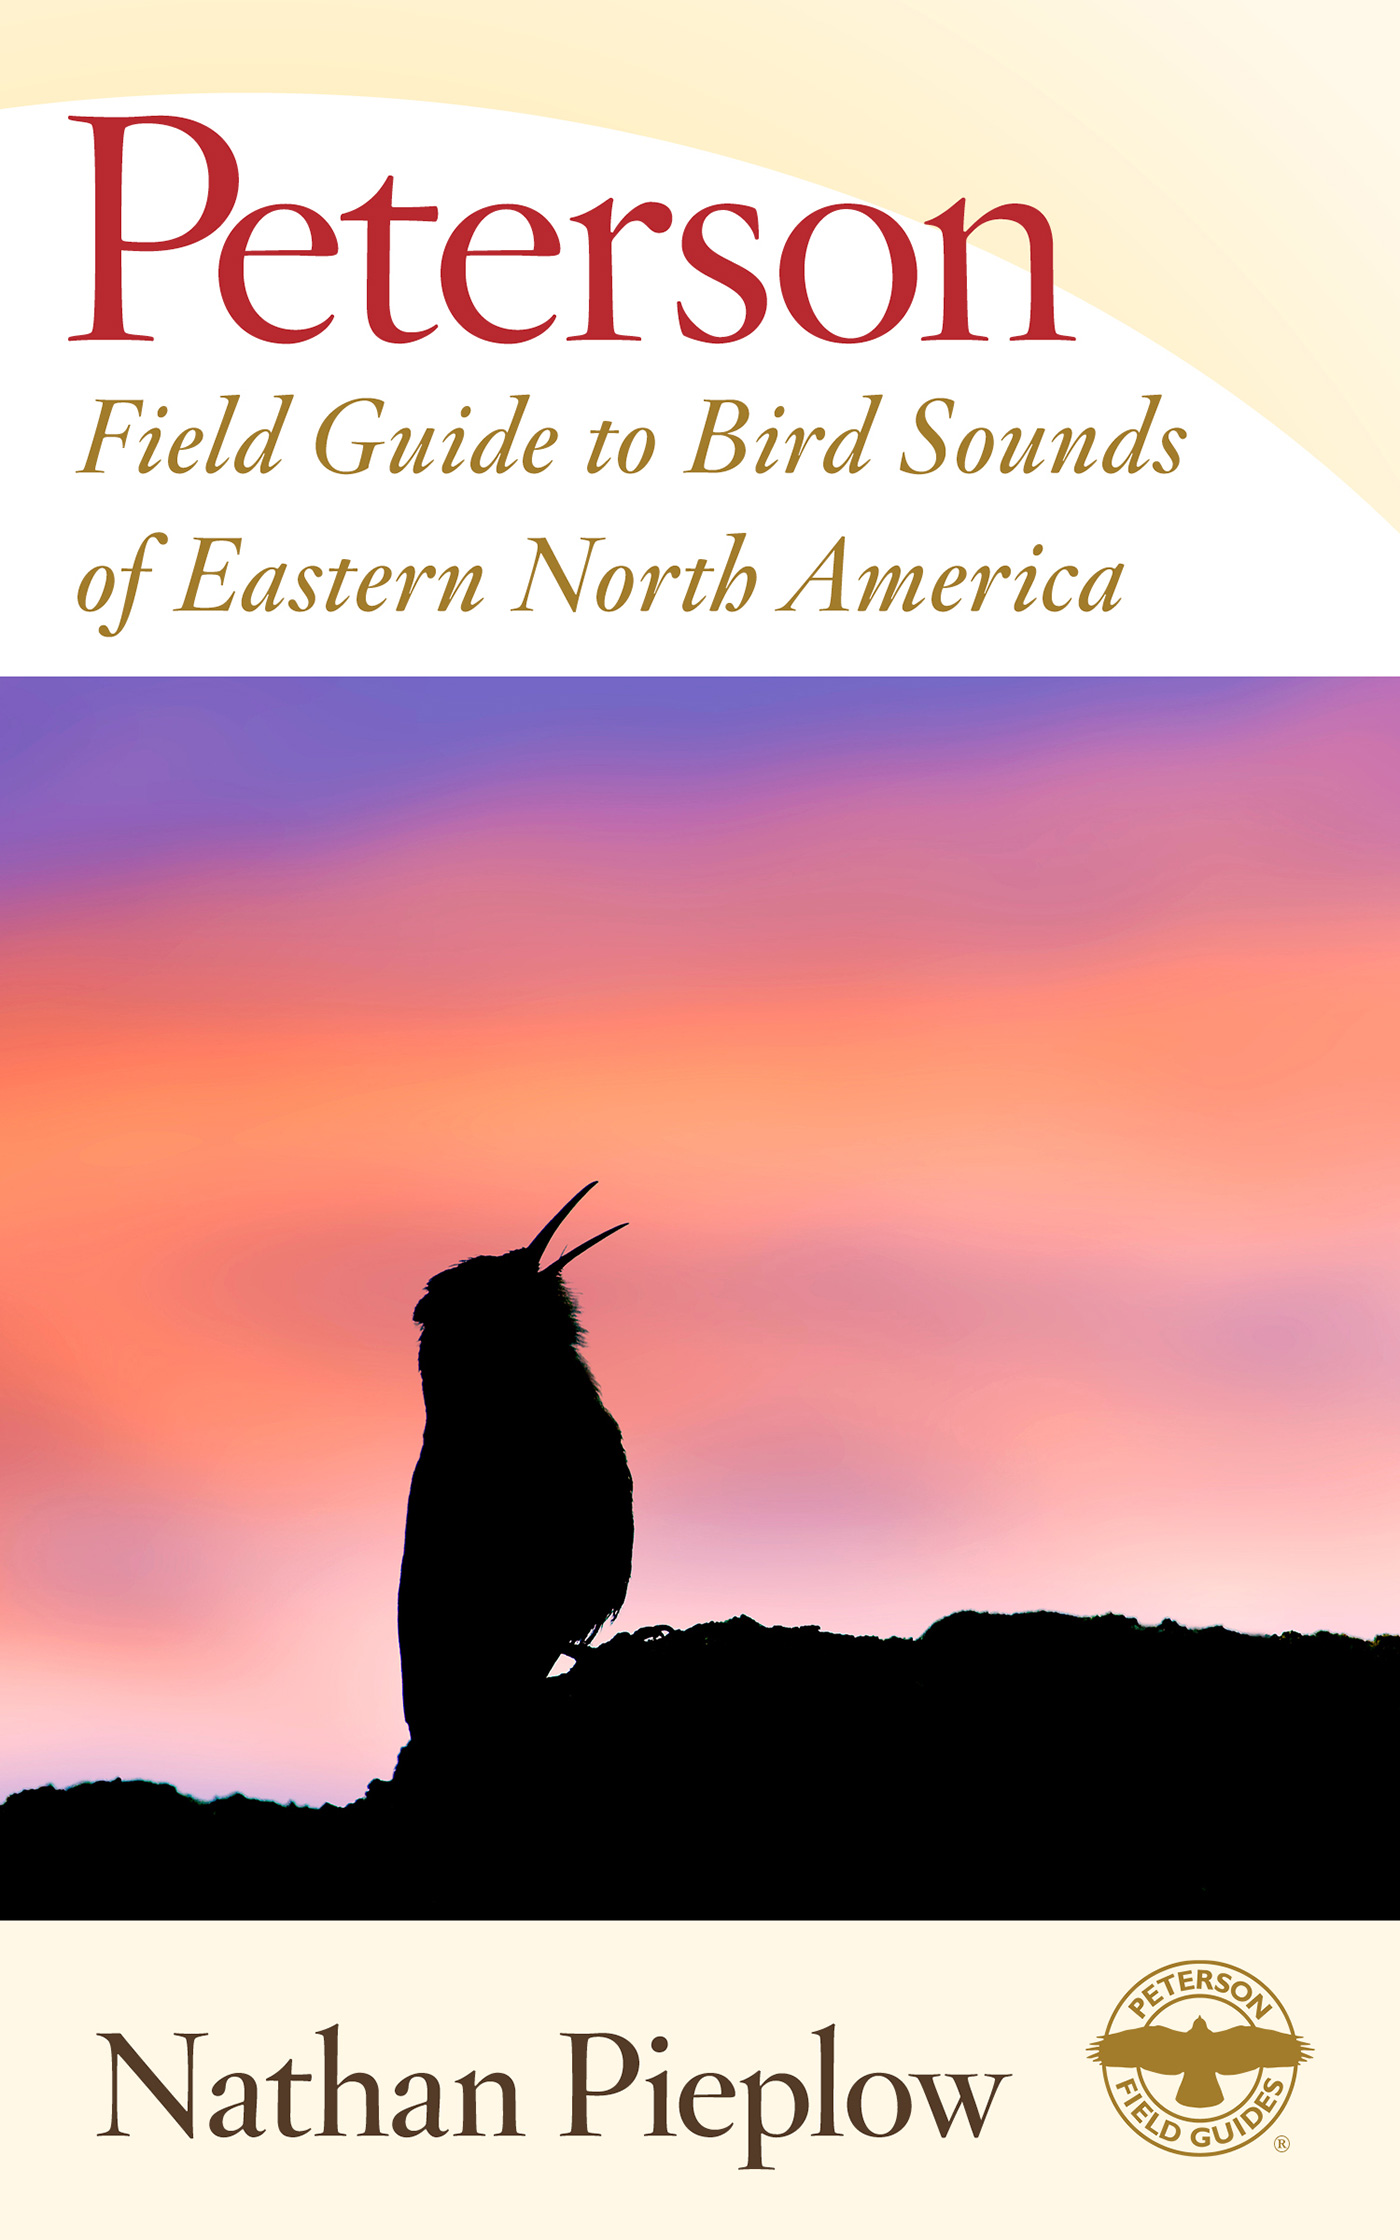 Peterson Field Guide to Bird Sounds of Eastern North America-9780547905587